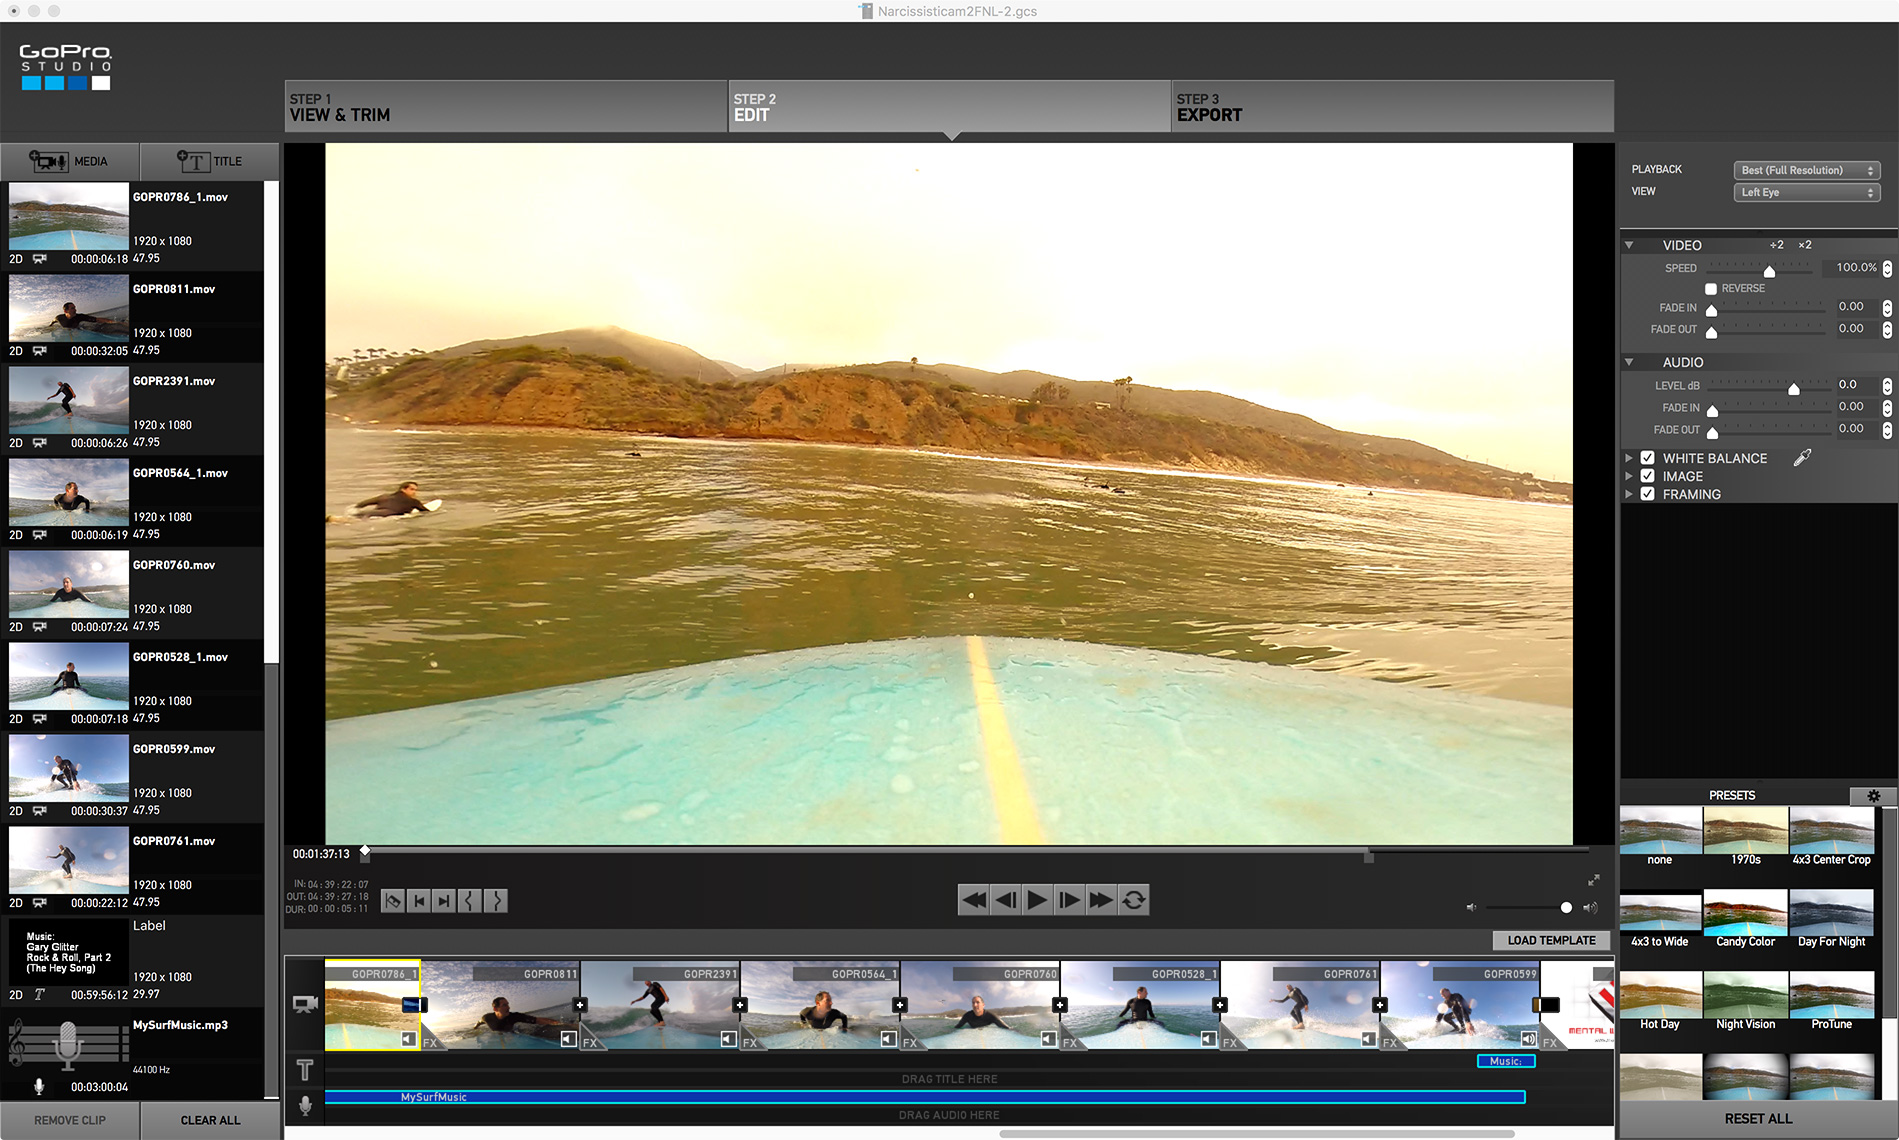 gopro studio templates download - editing video with a gopro blank template mental ward design